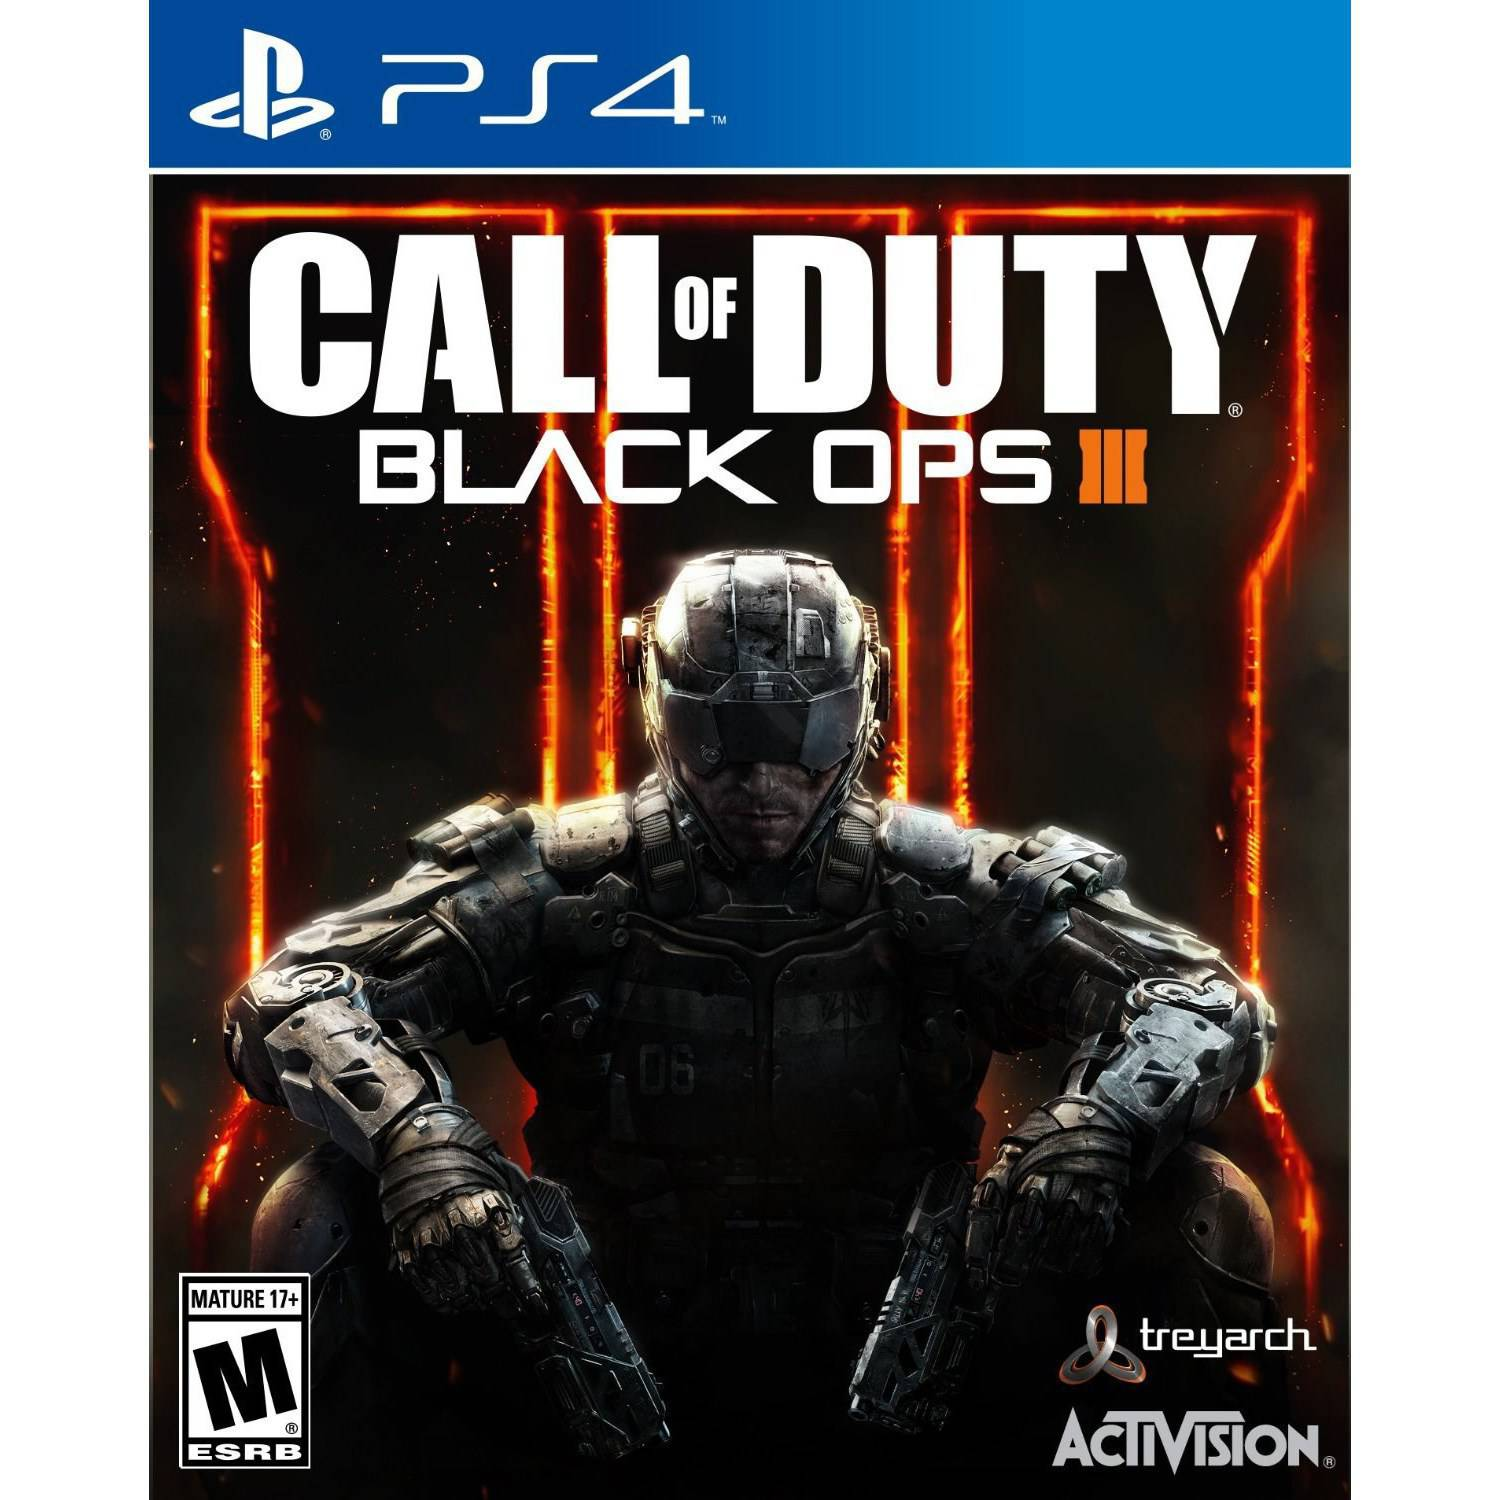 Call Of Duty Black Ops 3 (Playstation 4) Used by Treyarch